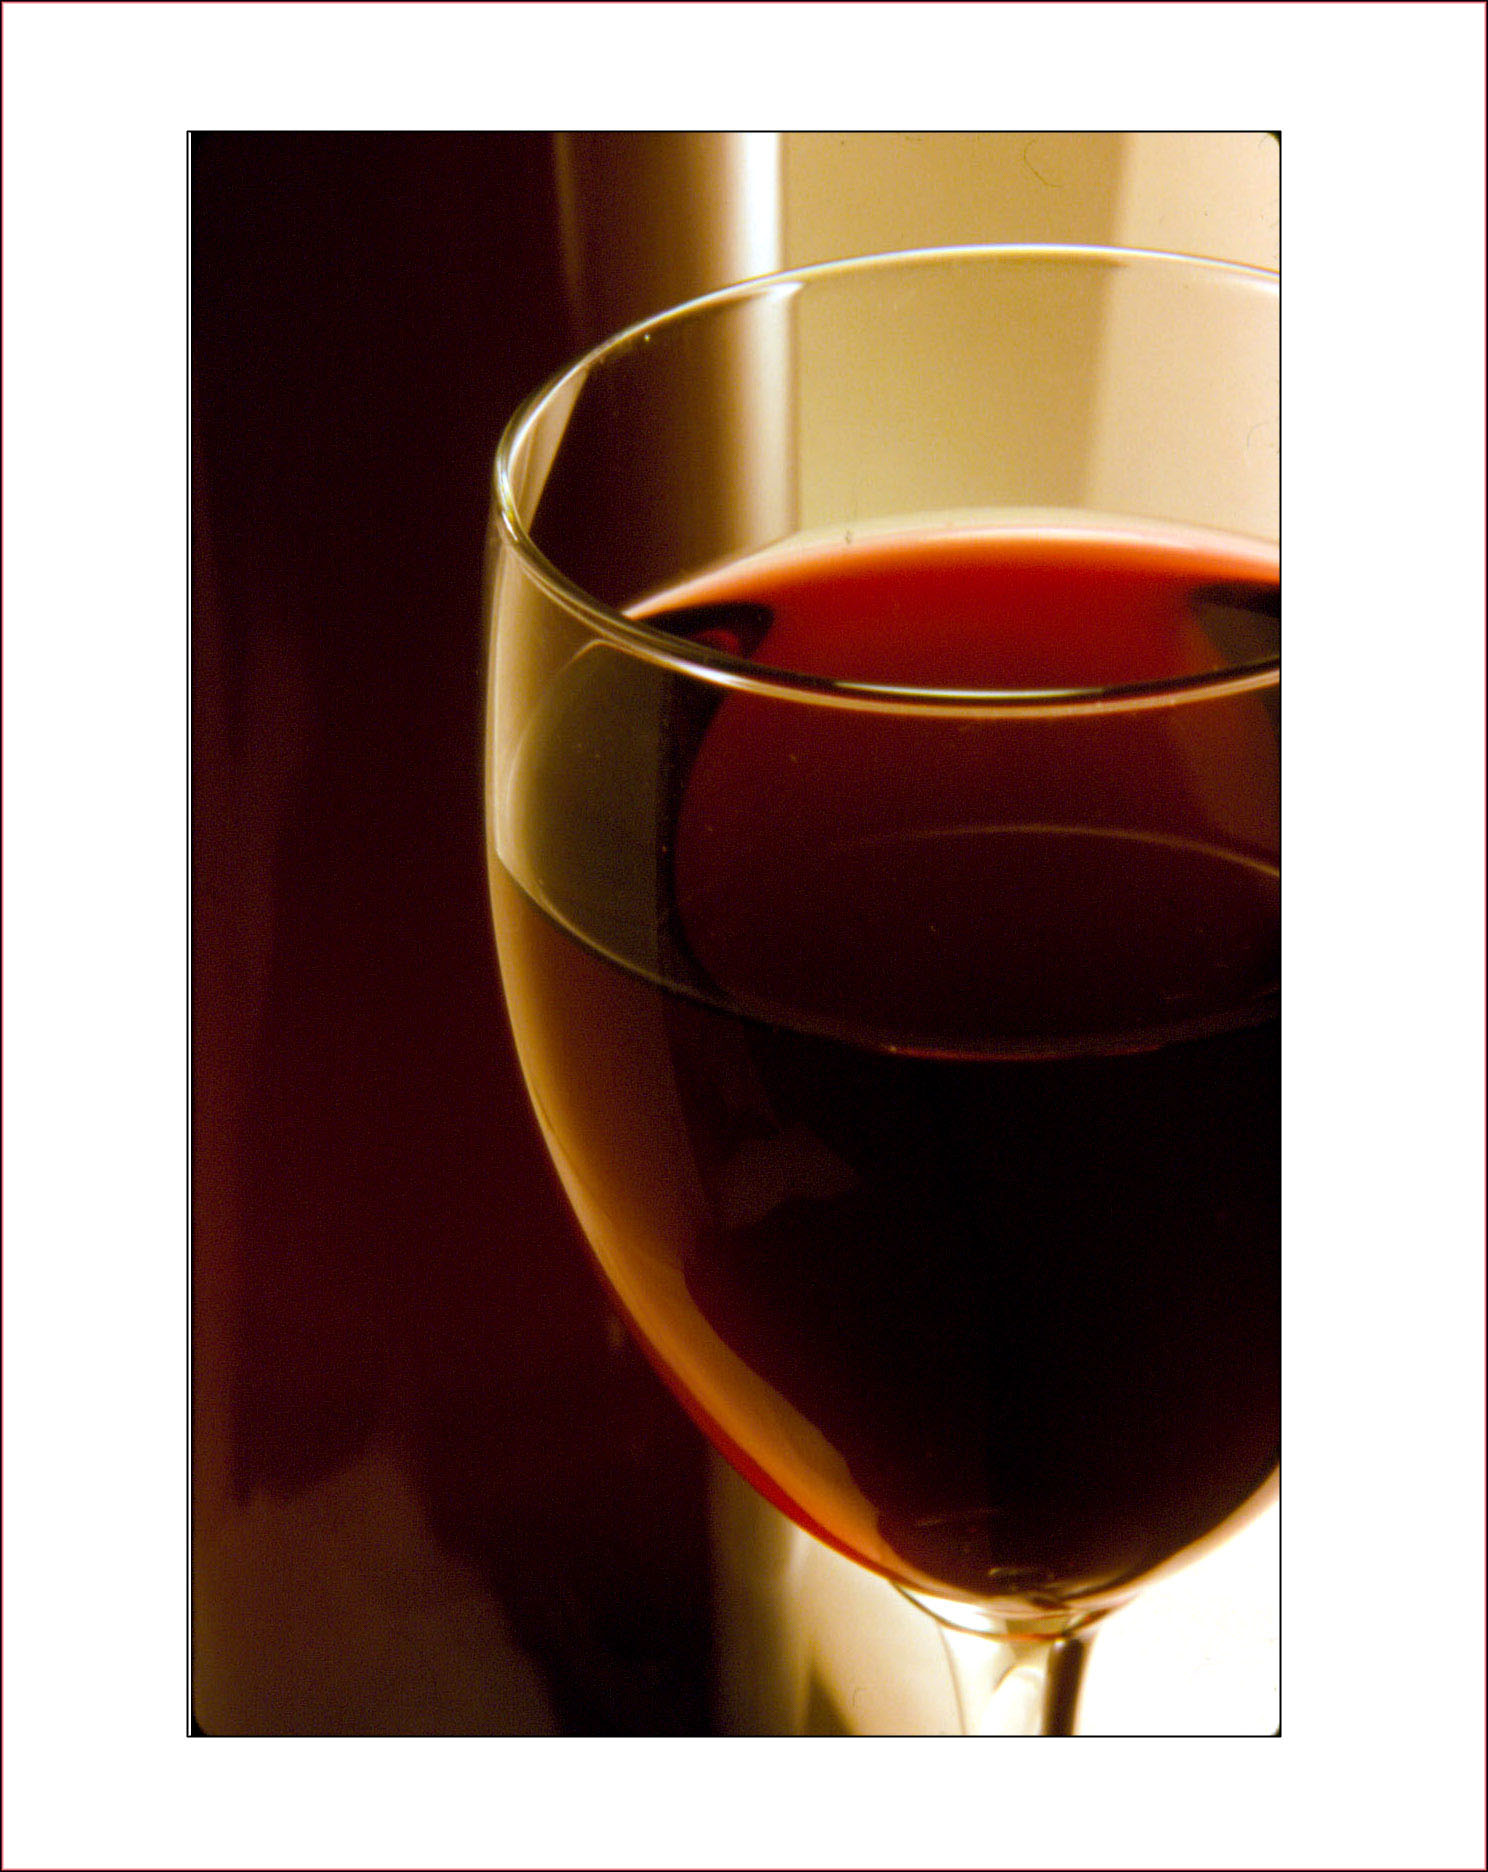 Studio Still: Pacific Northwest Cabernet Sauvignon. © High Cascade Studios